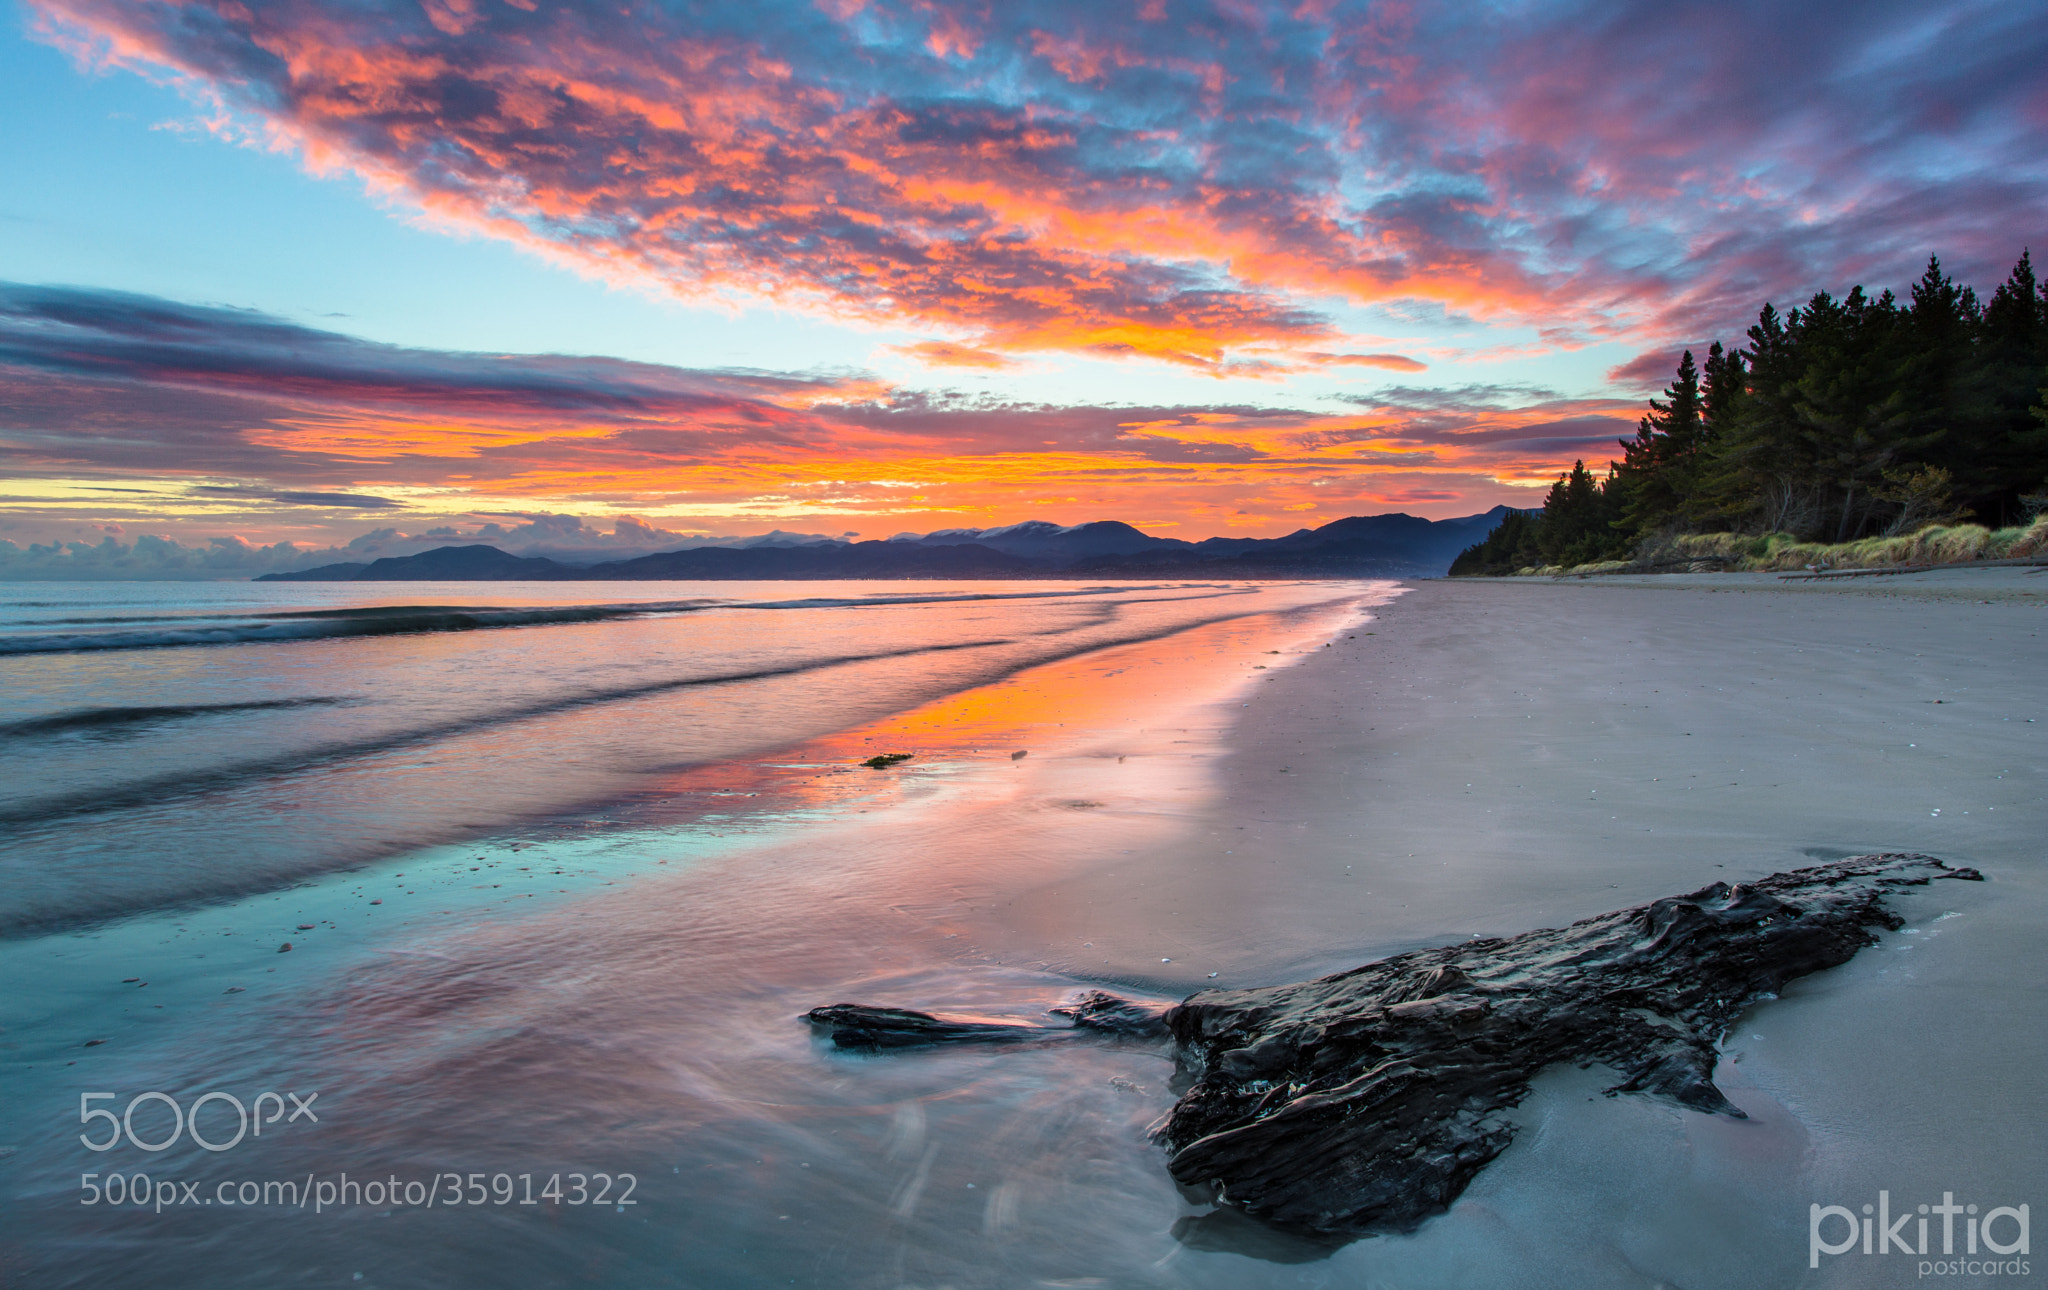 Photograph View to Nelson from Rabbit Island by Pikitia Postcards  on 500px